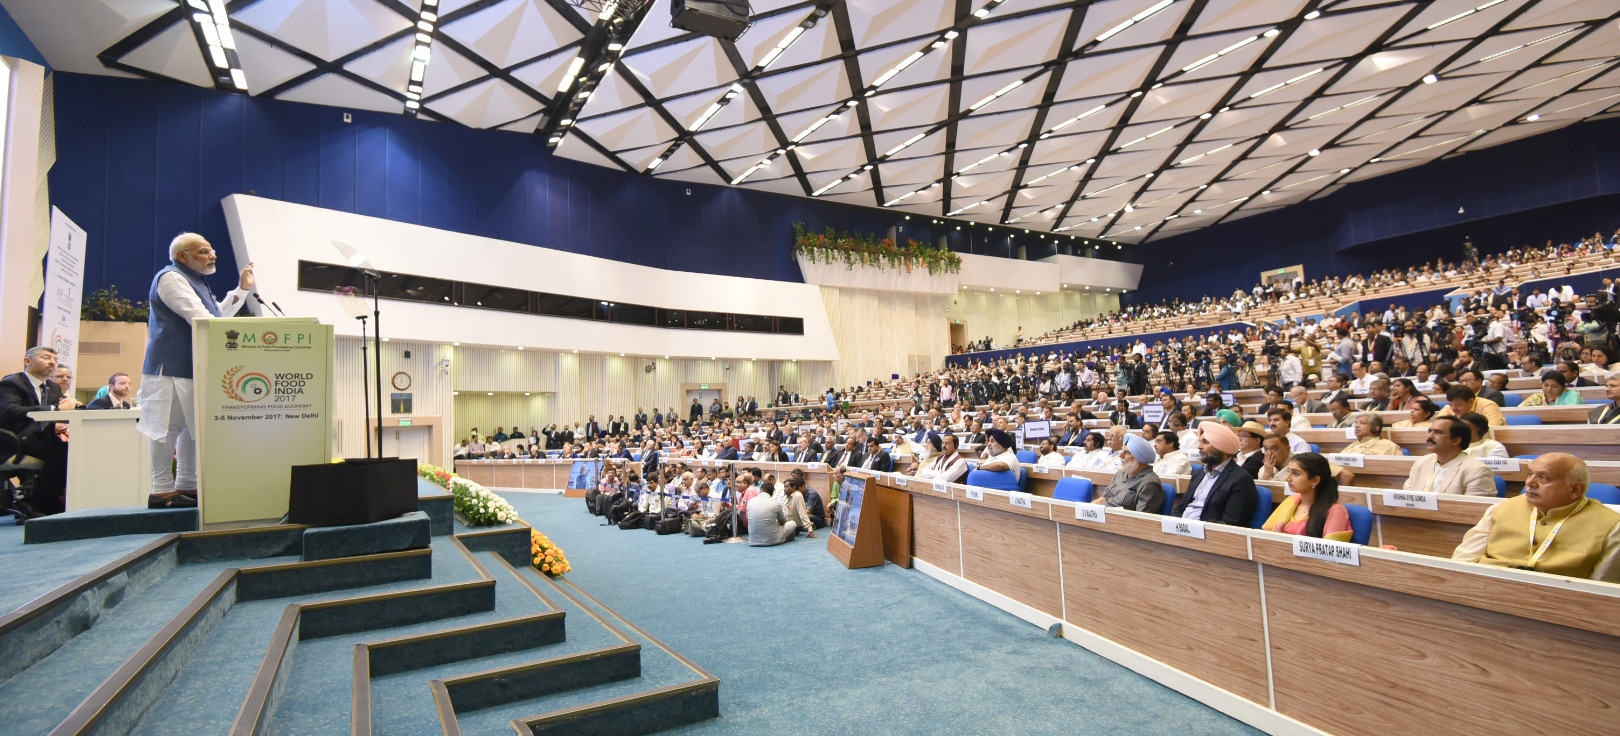 The Prime Minister, Shri Narendra Modi addressing the gathering at the inauguration ceremony of the World Food India 2017, in New Delhi on November 03, 2017.